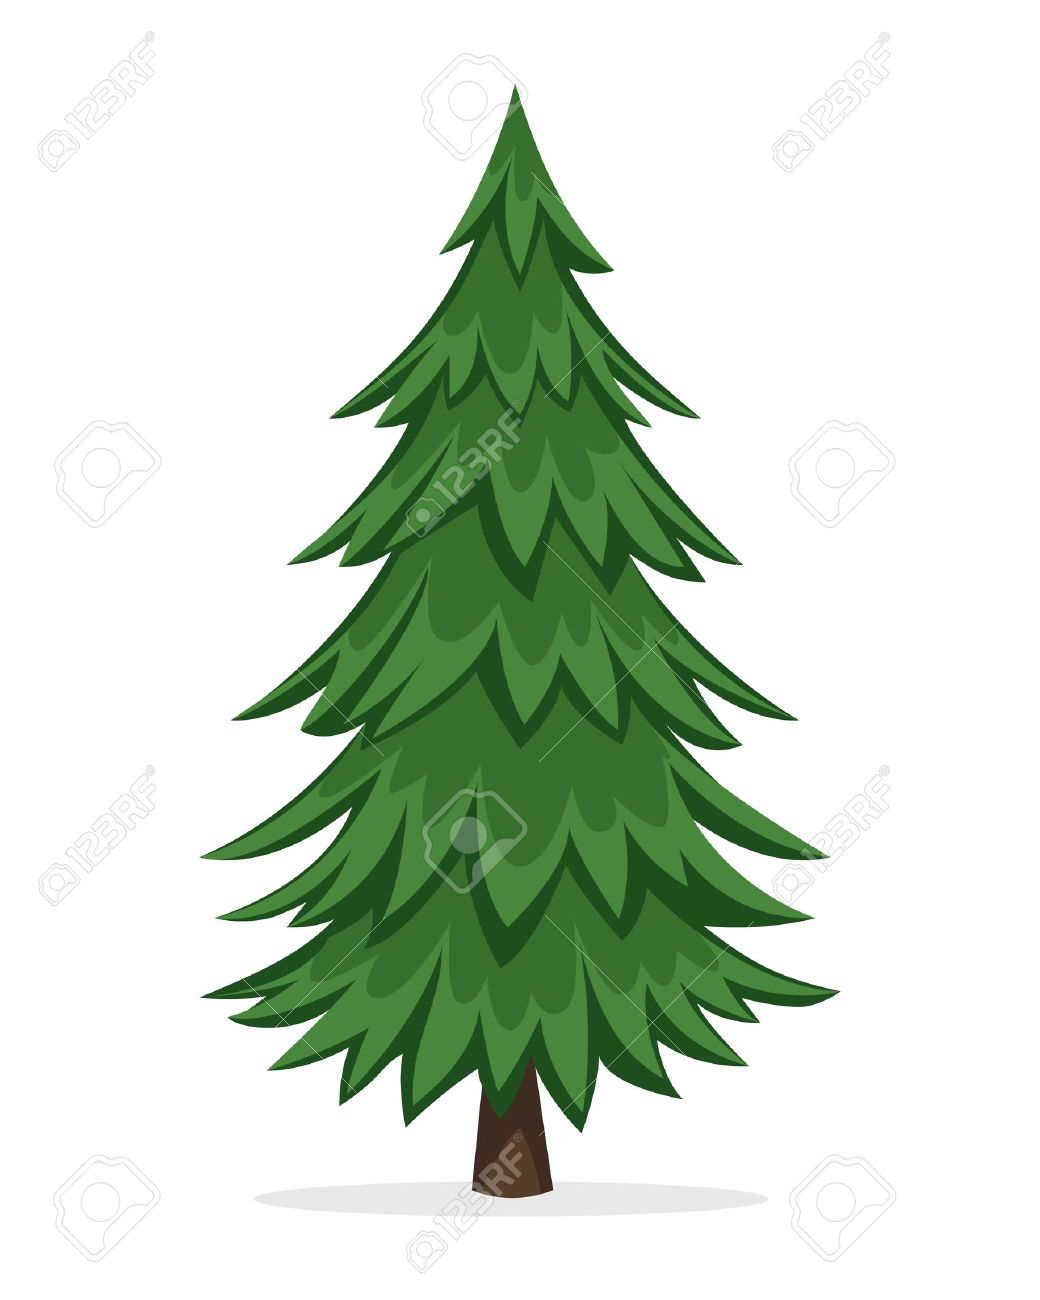 pine tree clipart at getdrawings com free for personal use pine rh getdrawings com pine tree clip art with halo pine tree clip art with halo